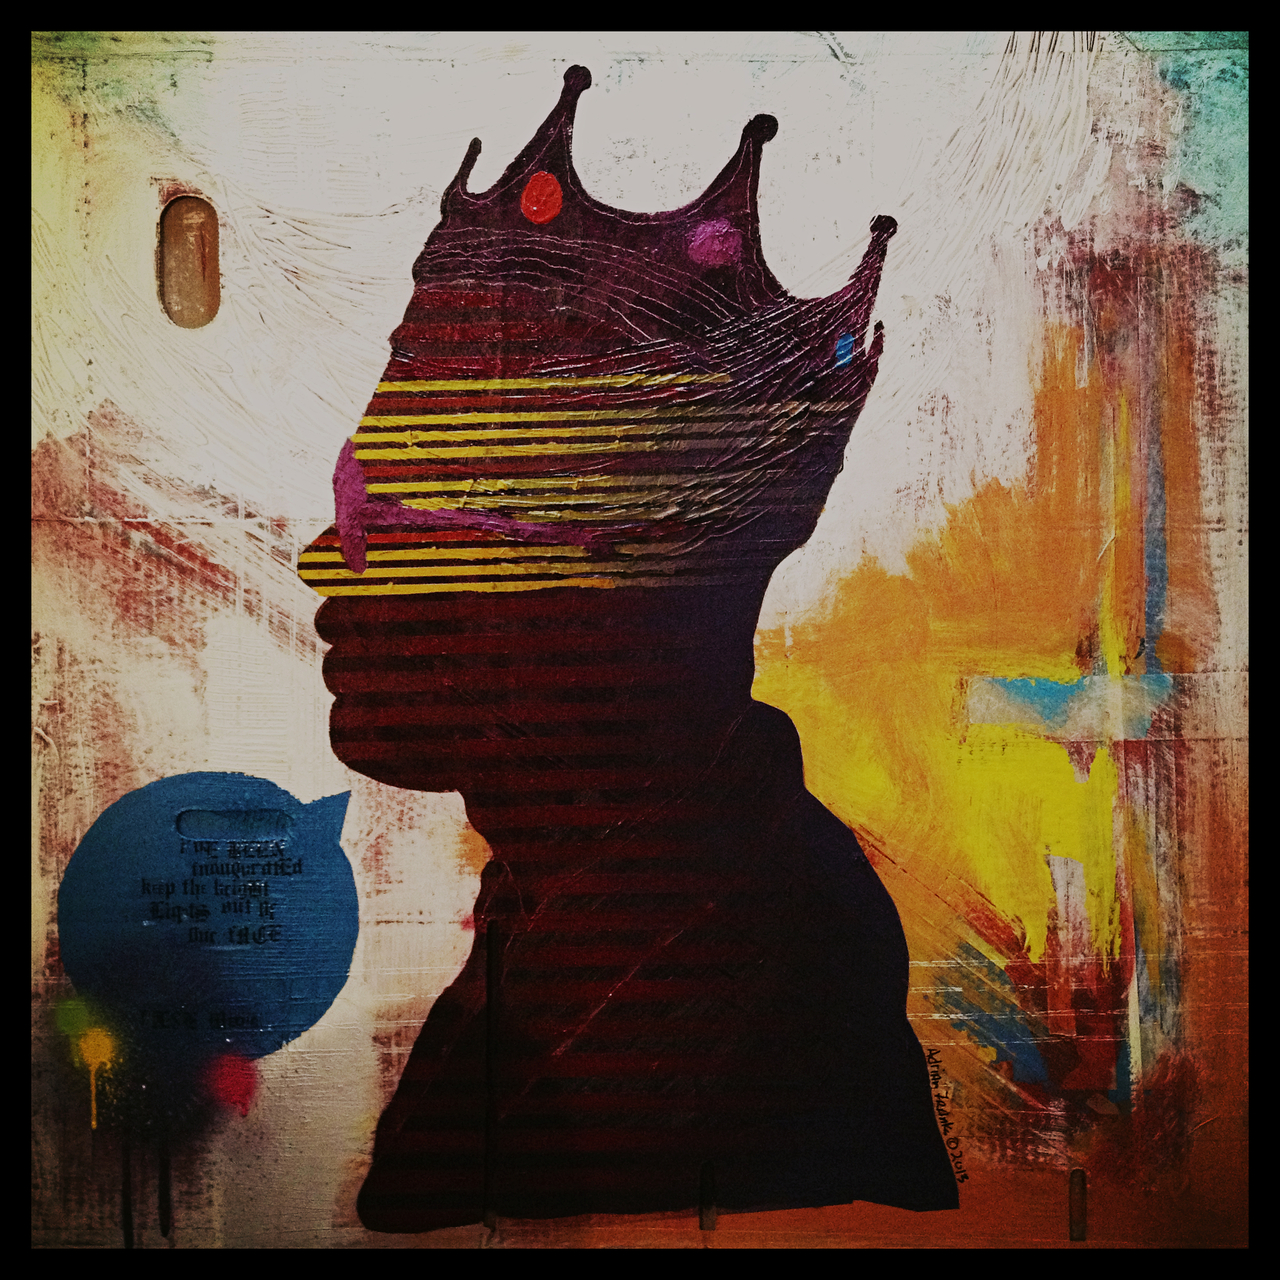 """False Media Wears The Crown"" by Adrian Franks #peppersearching #pepper #photos #fearless #crown #painting"